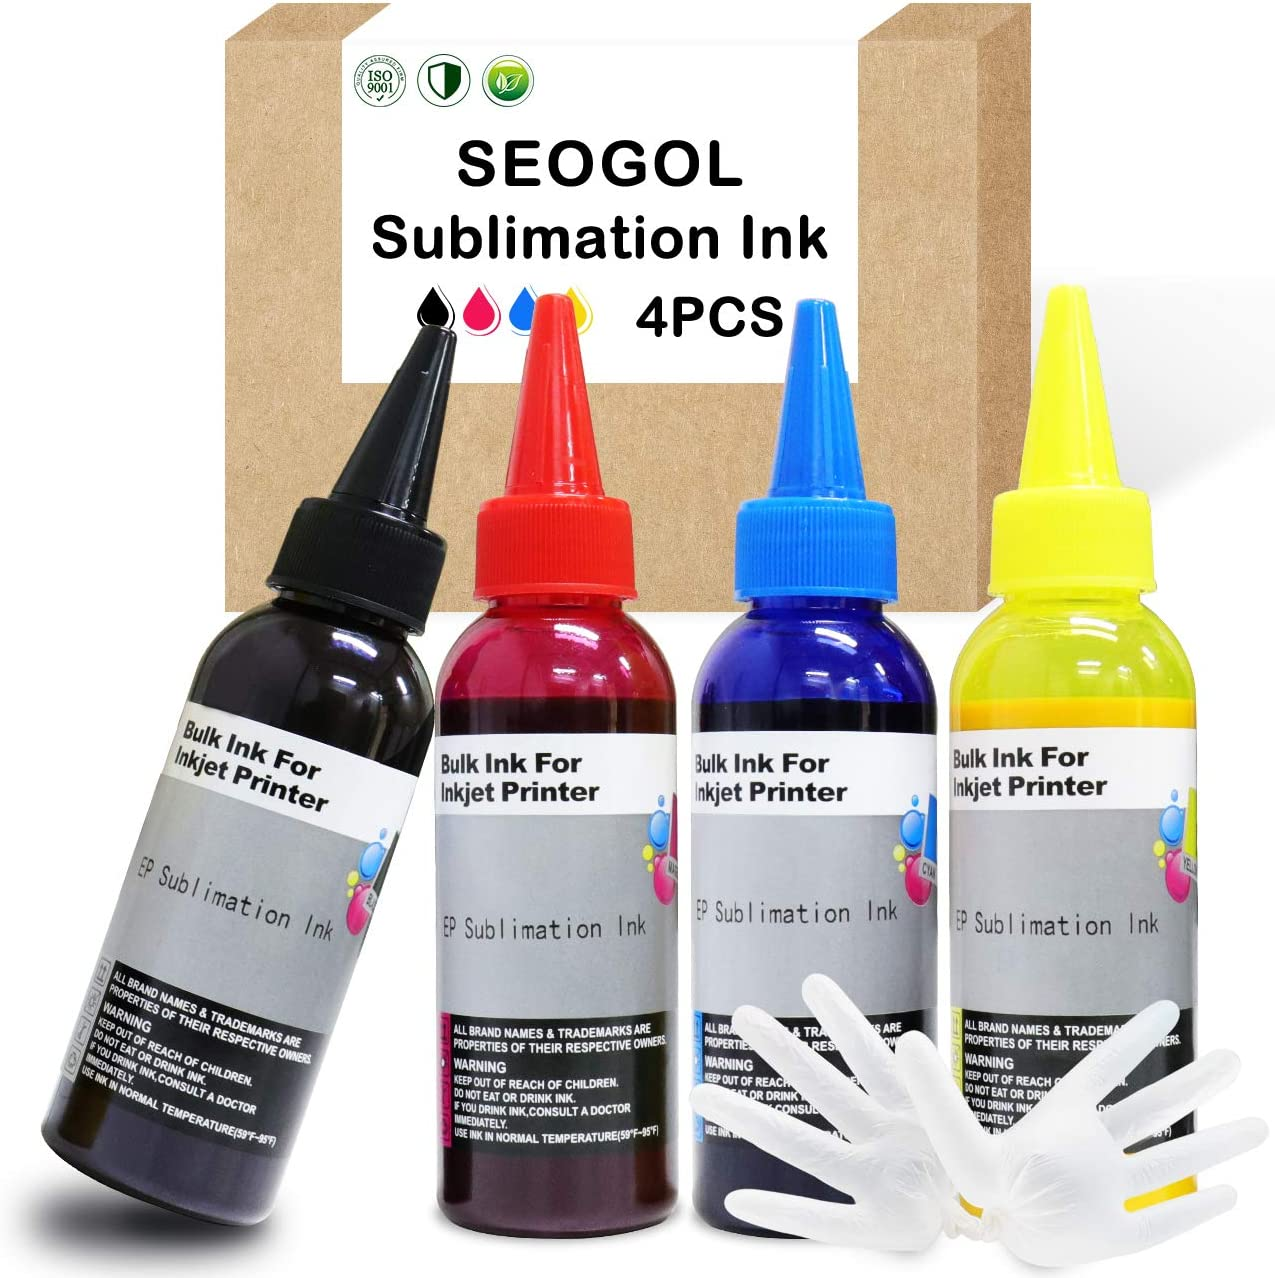 Seogol 400ml Sublimation Ink for Epson Inkjet Printers C88+ C88 WF7710 WF7720 ET2720 ET15000 ET4700 ET4760 WF7210 WF7610 Heat Press Transfer on Mugs, Pillow, Plates, Polyester Shirts, Phone Cases etc